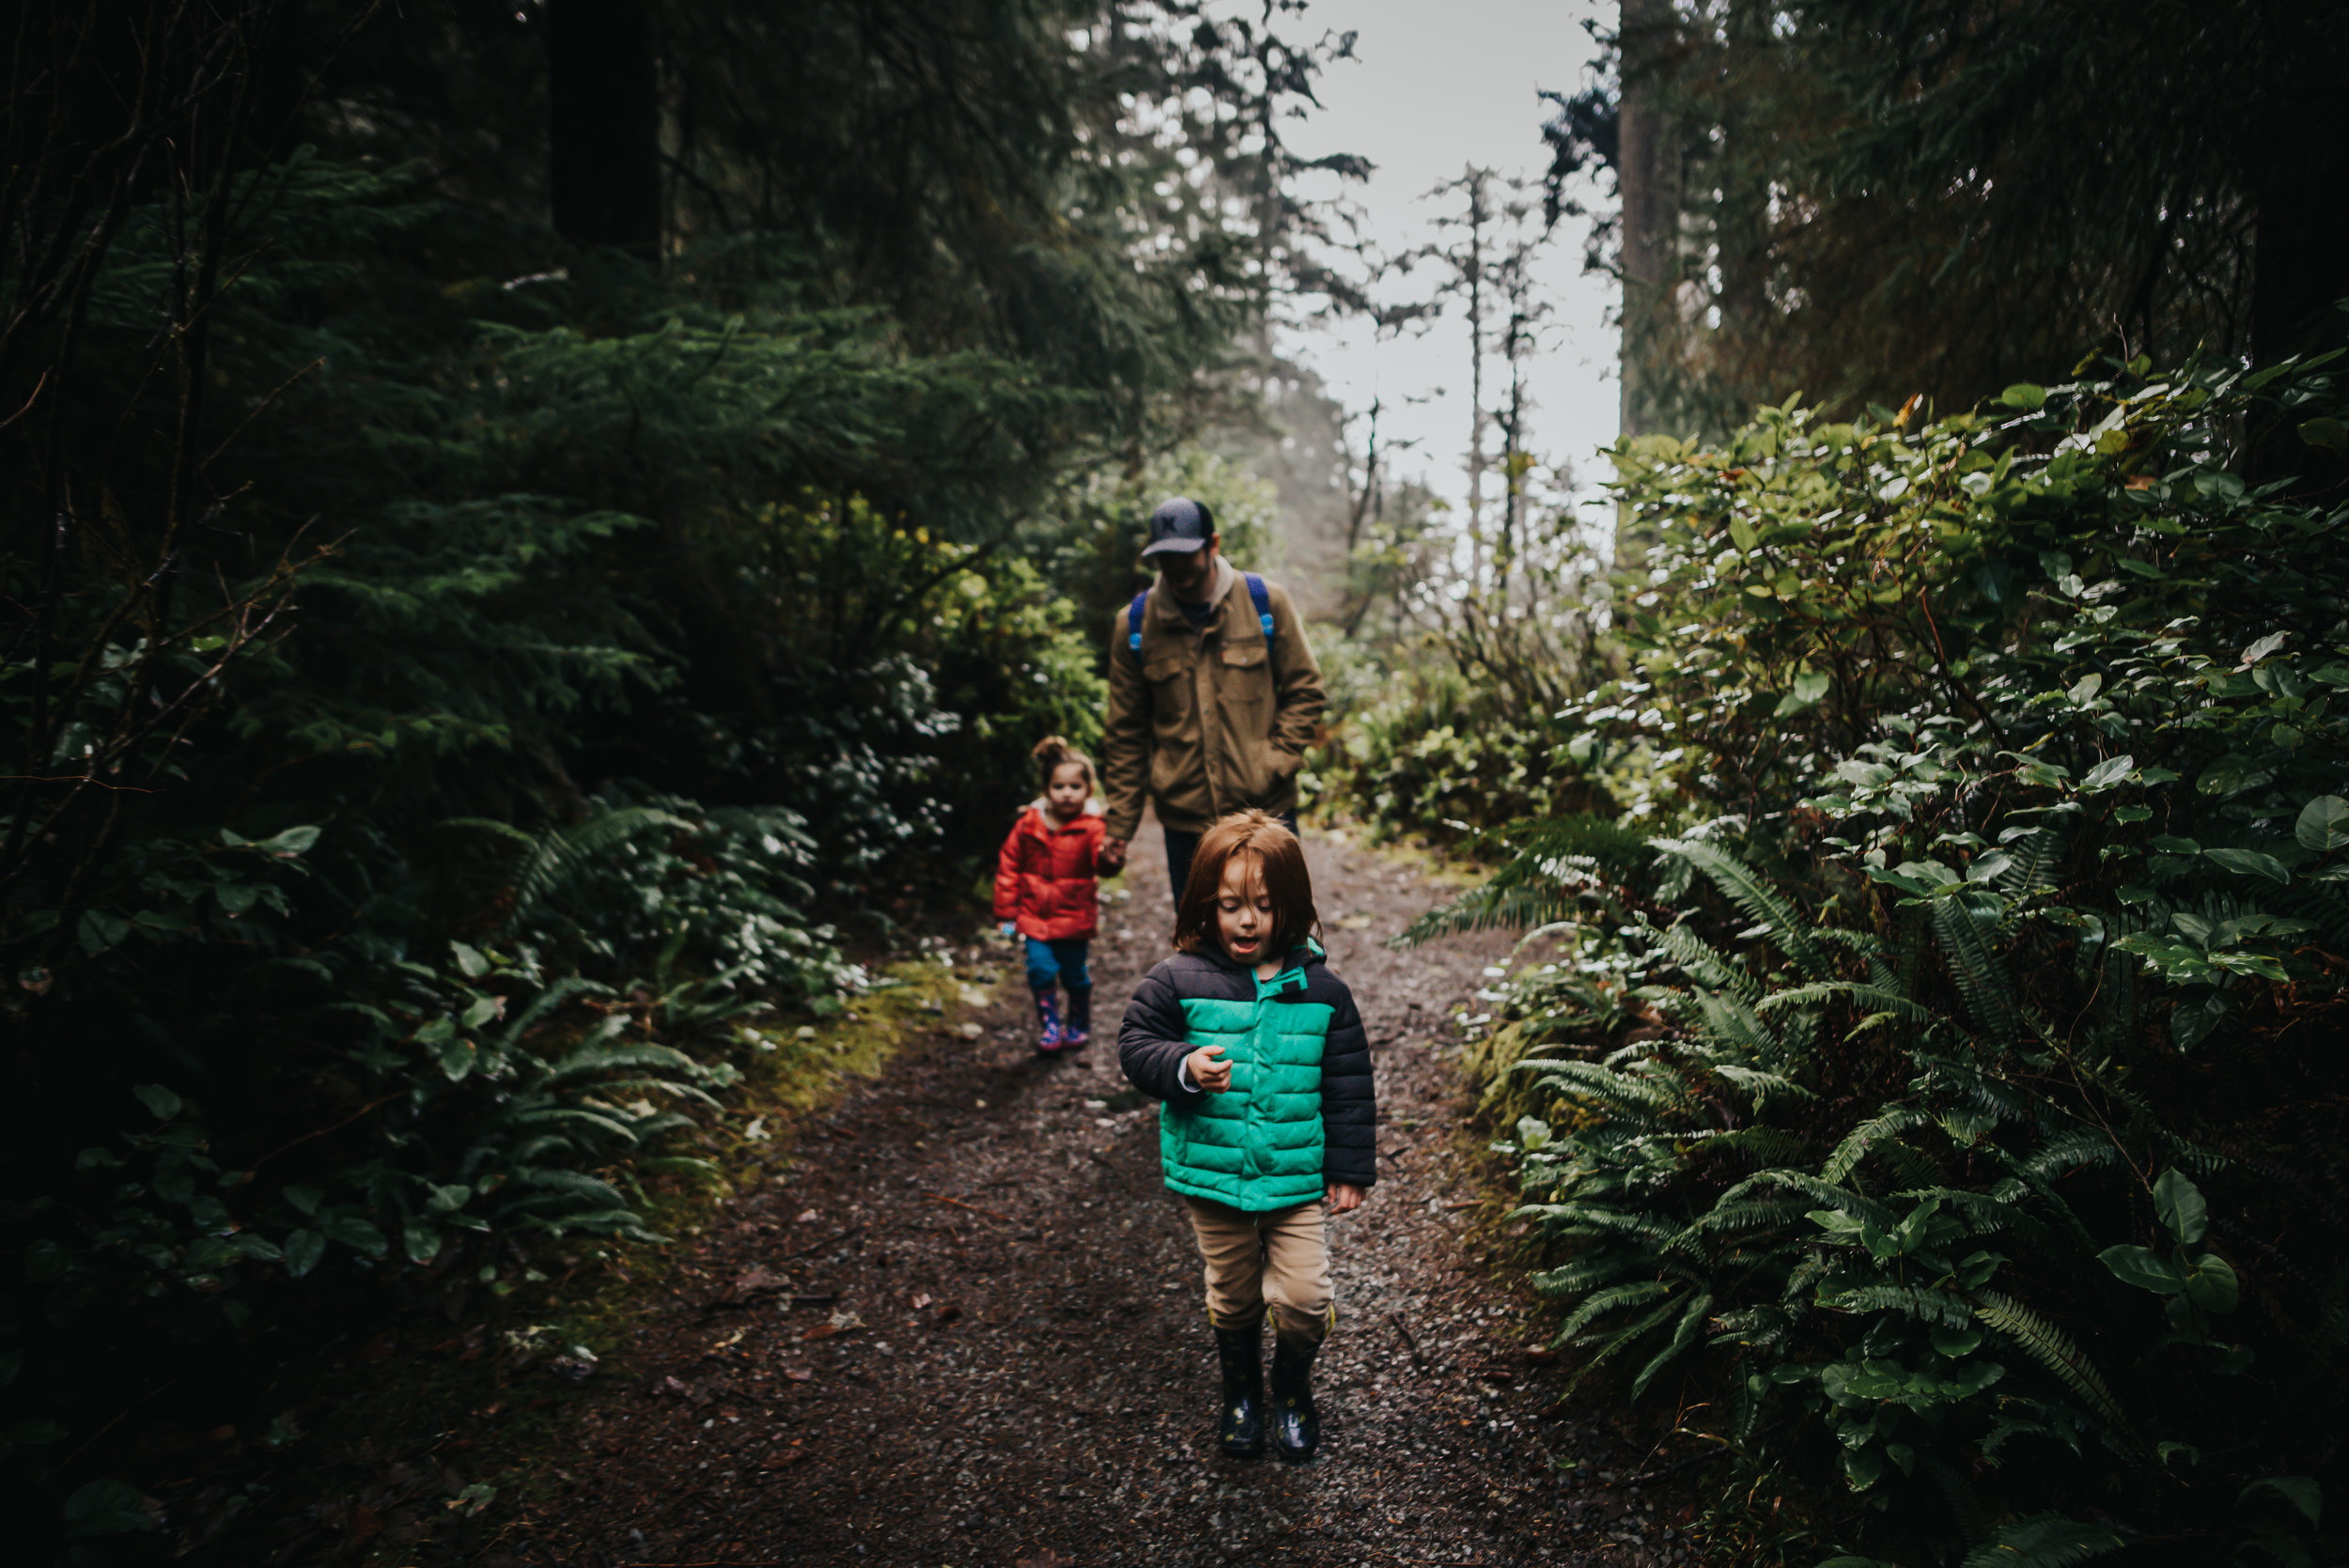 Children walk with their dad in the Oregon Forest in Oswald West State Park.